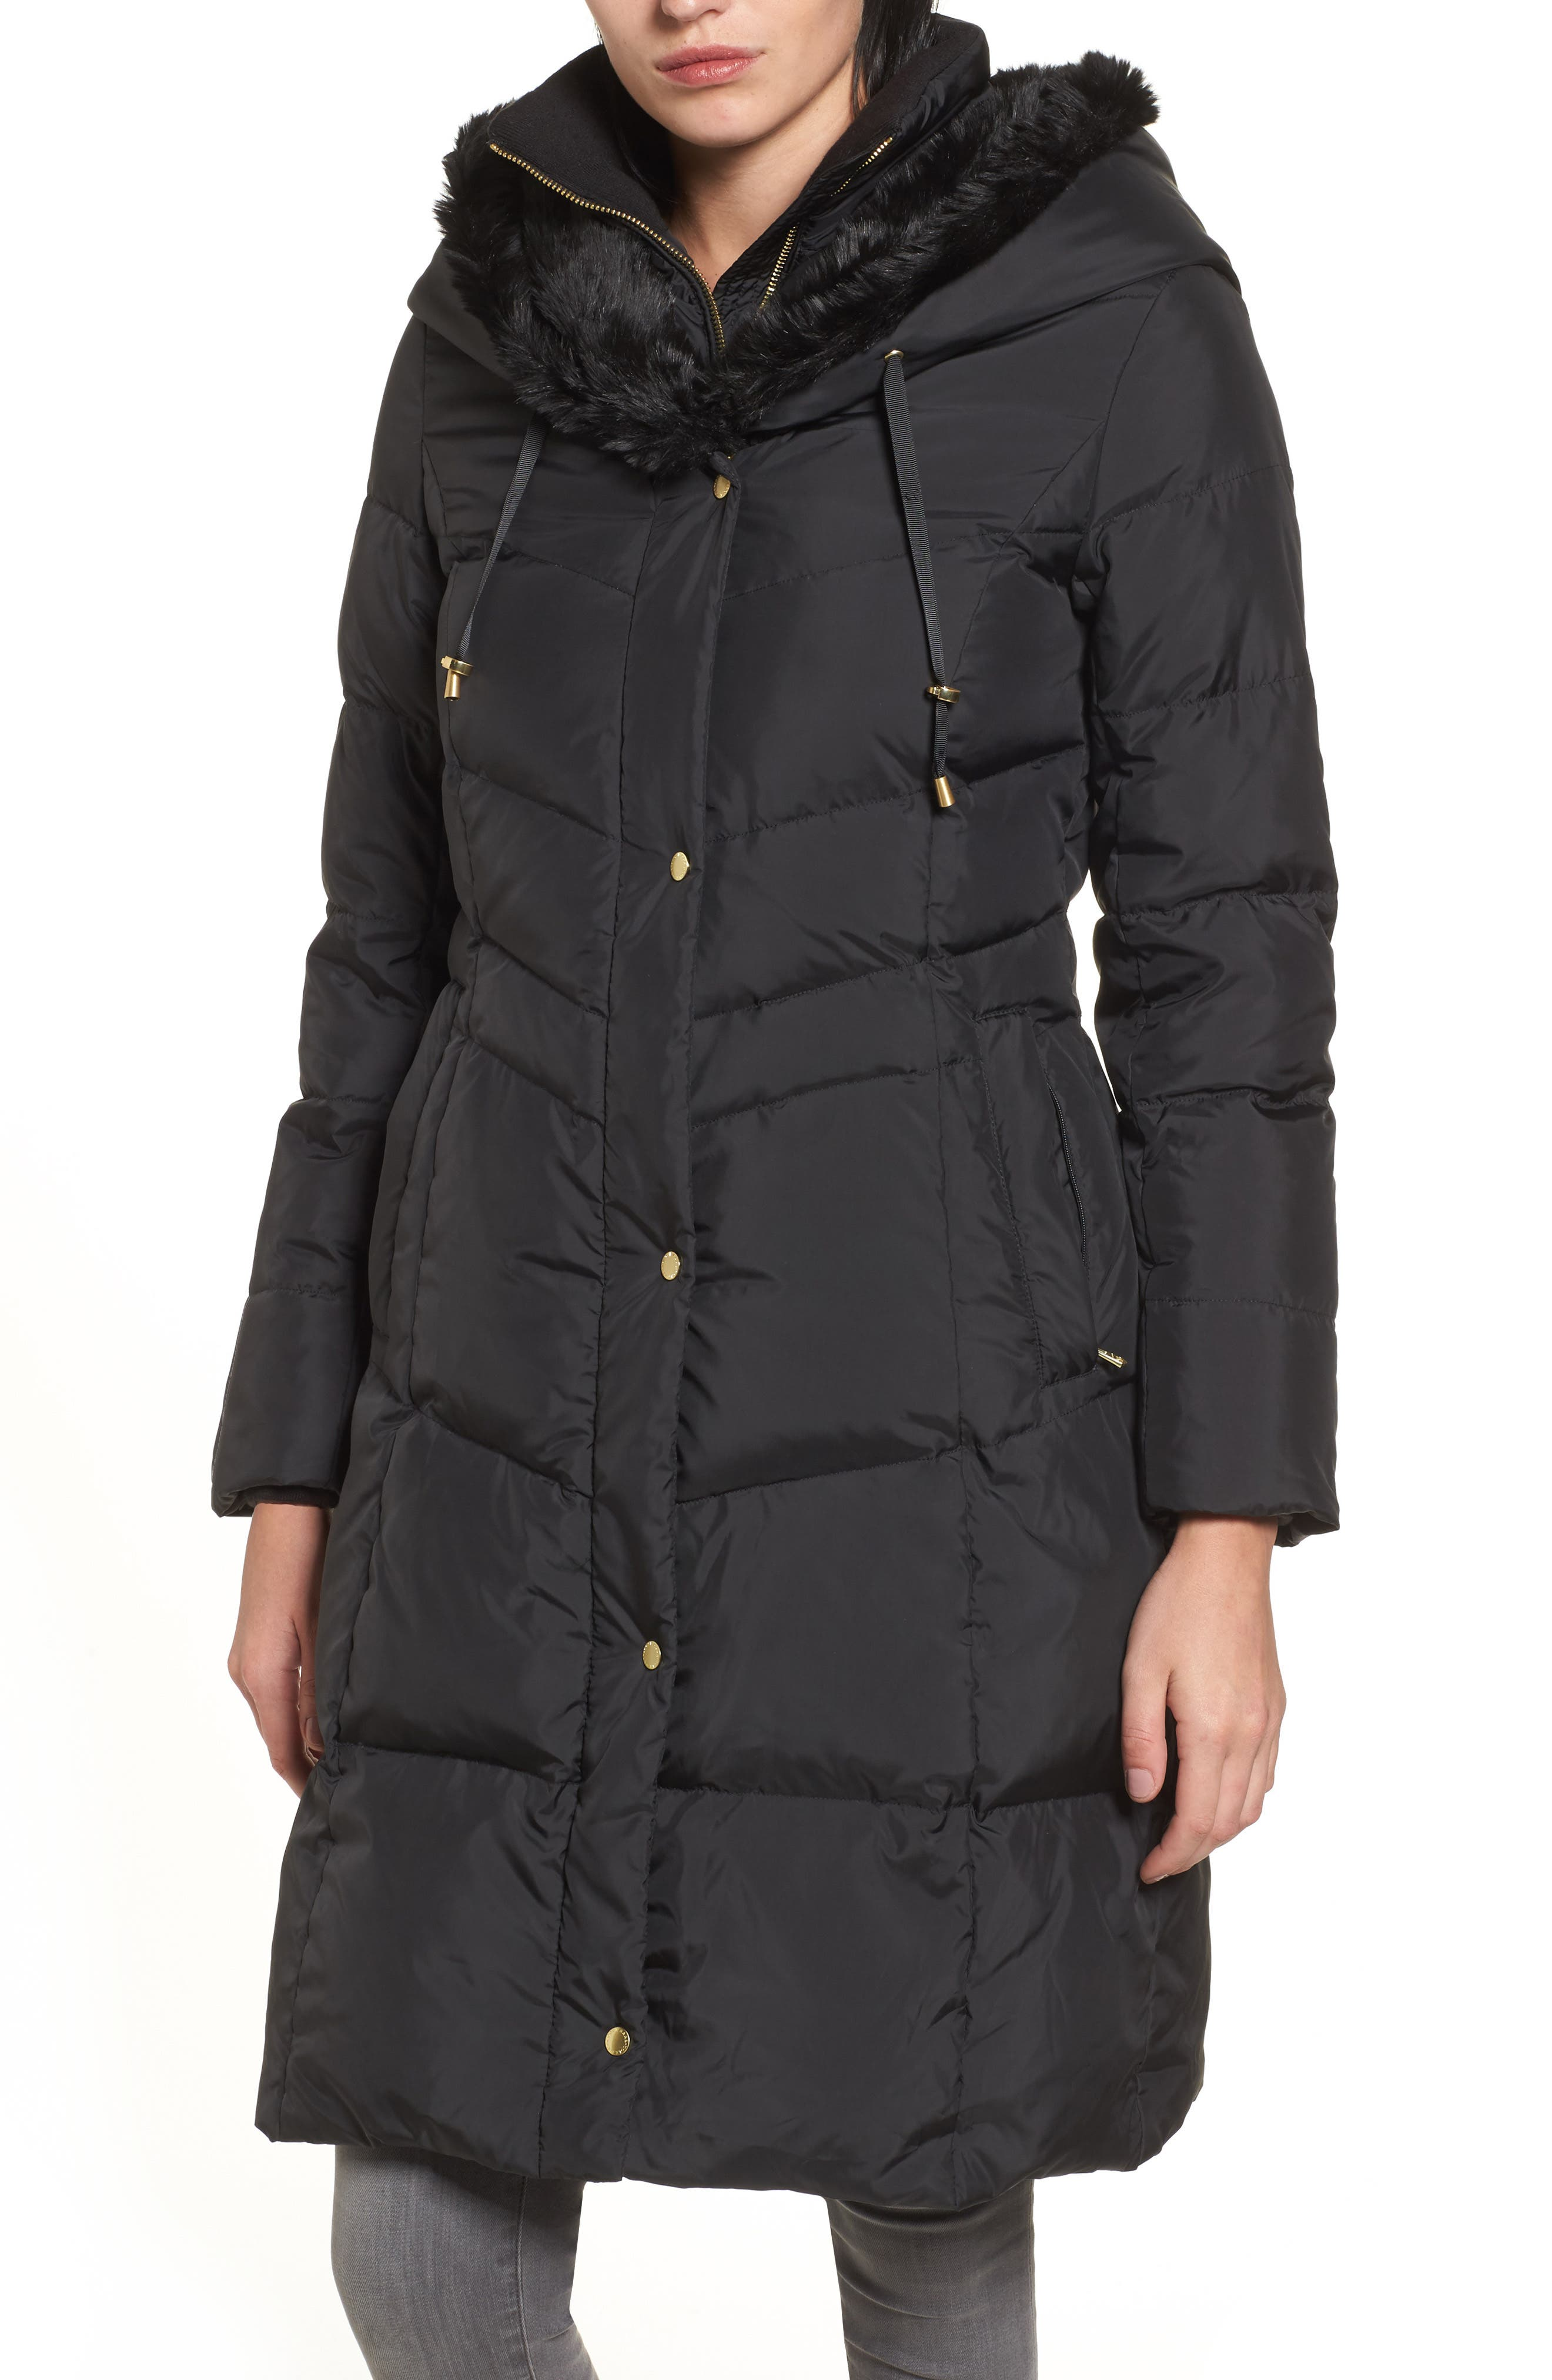 Cole Haan 3/4 Down Coat with Faux Fur Hood